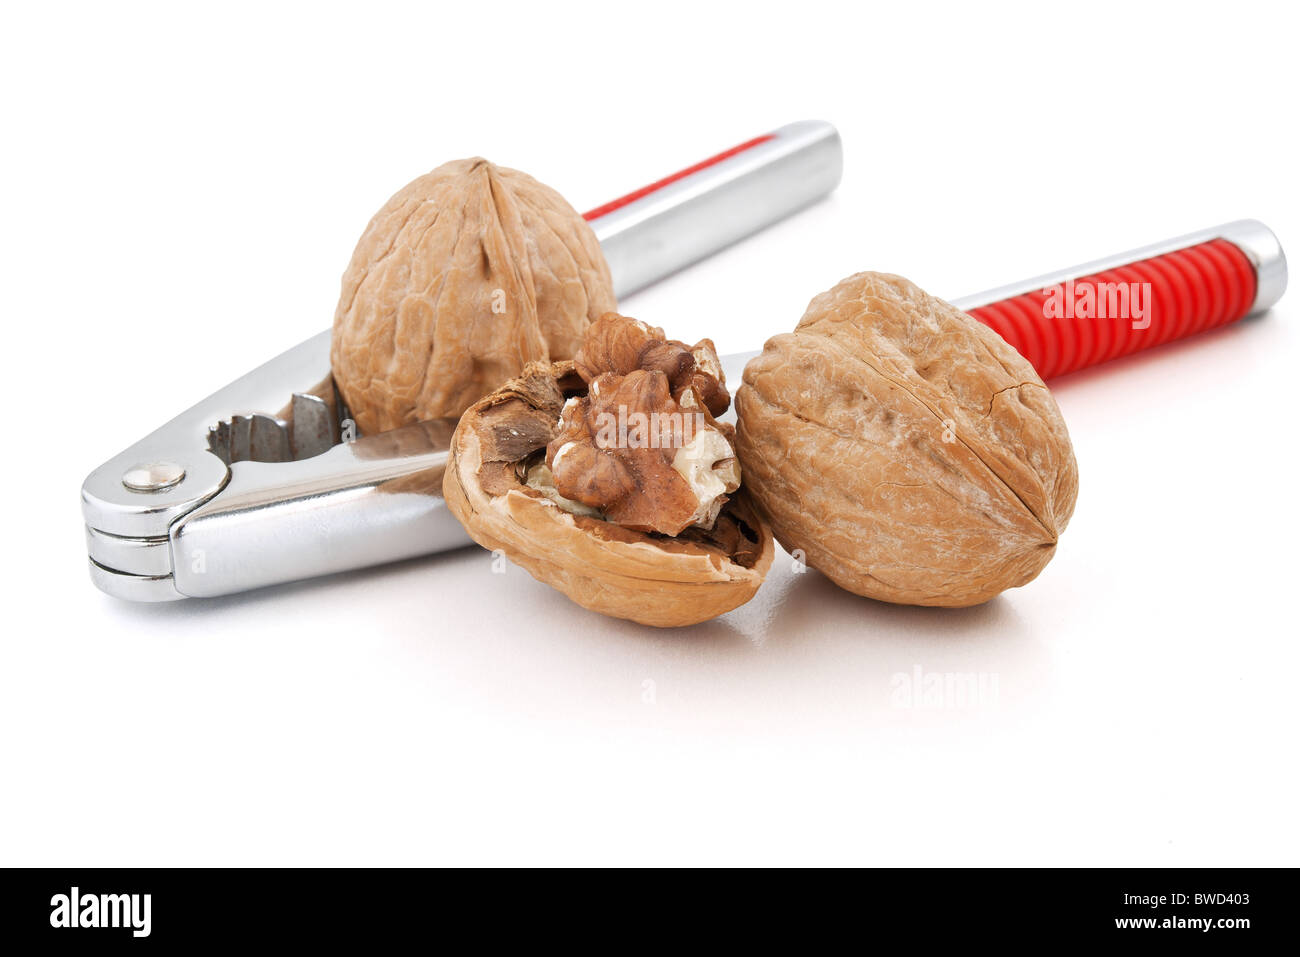 detail of nutcracker with walnuts isolated on white background - Stock Image